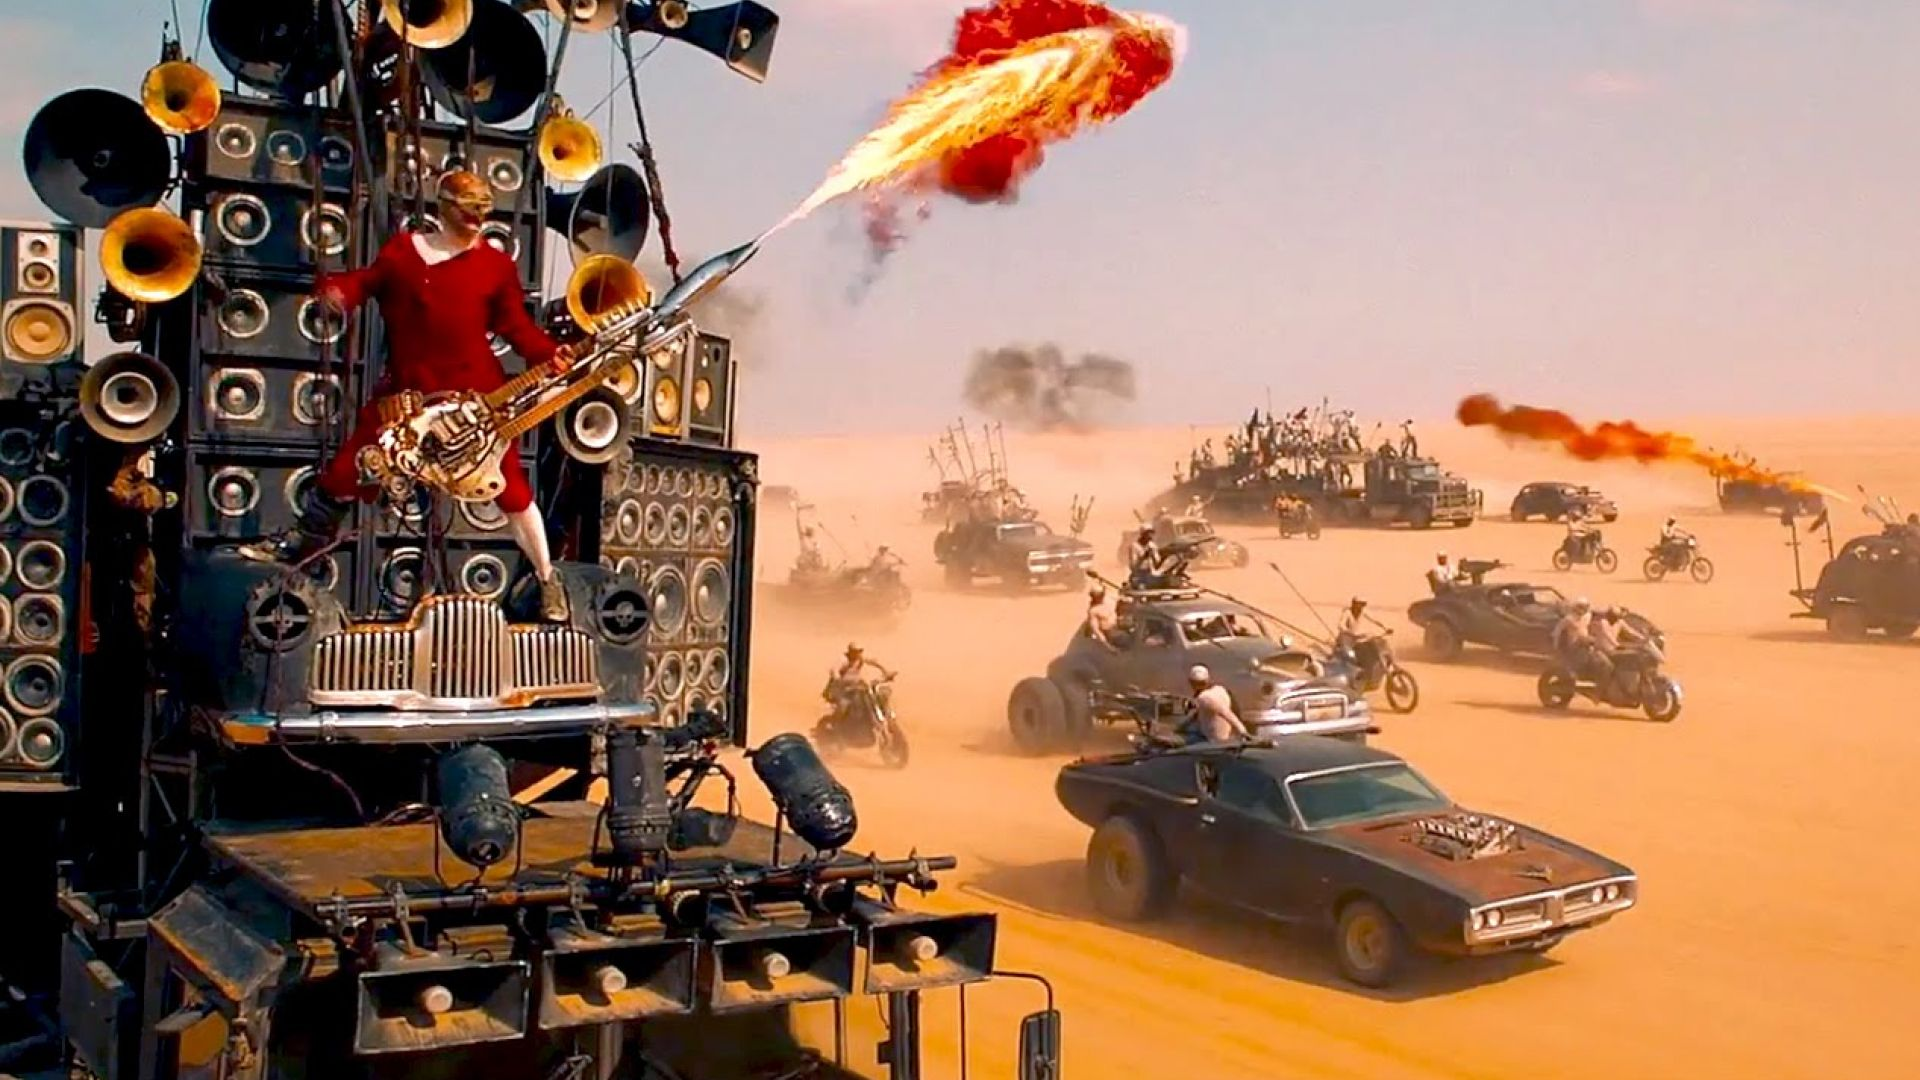 How George Miller got everything he wanted - Mad Max: Fury R